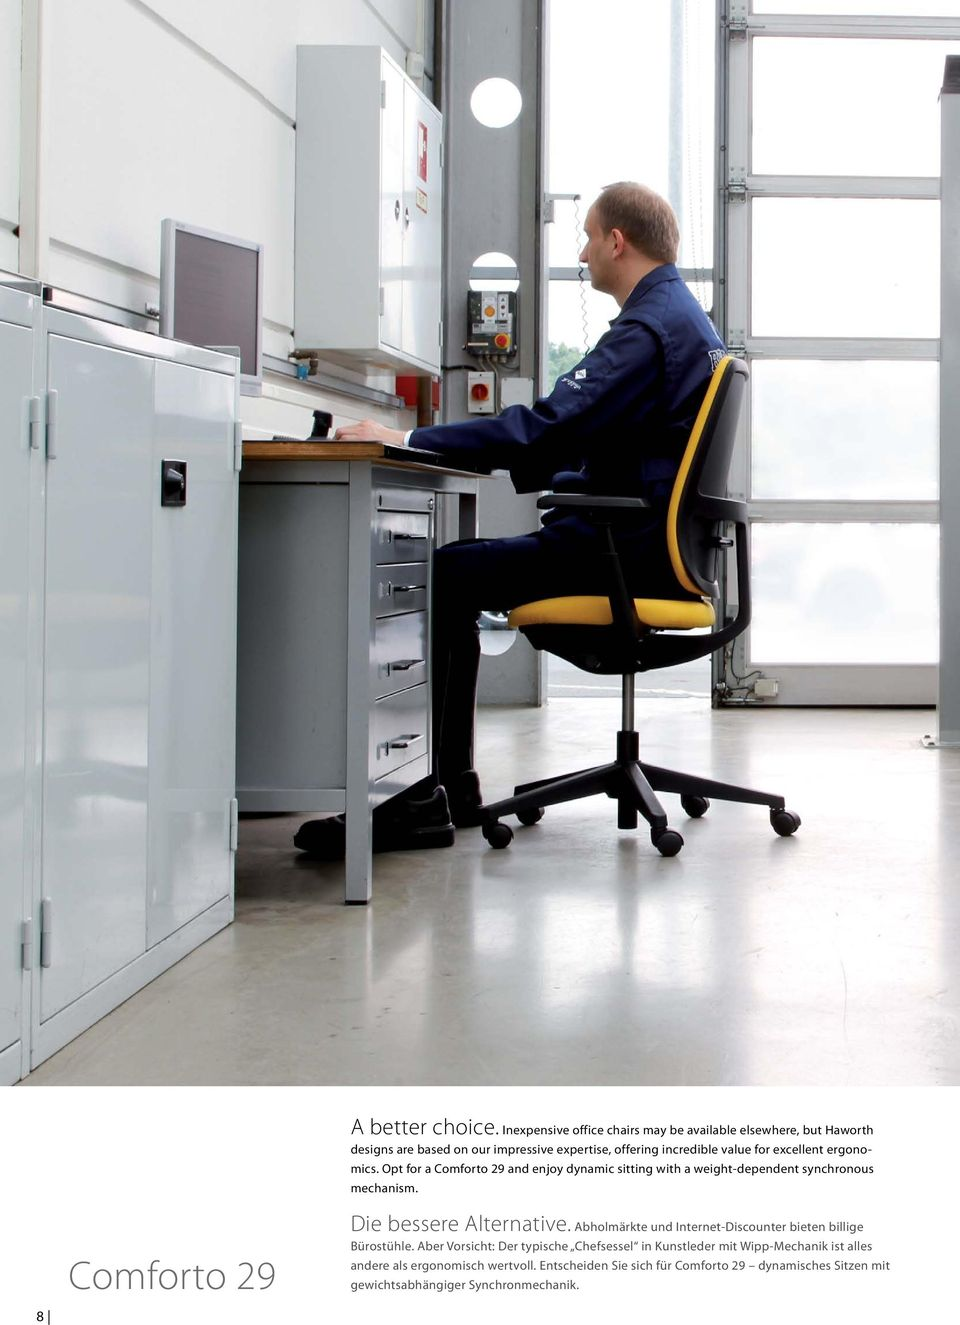 excellent ergonomics. Opt for a Comforto 29 and enjoy dynamic sitting with a weight-dependent synchronous mechanism.